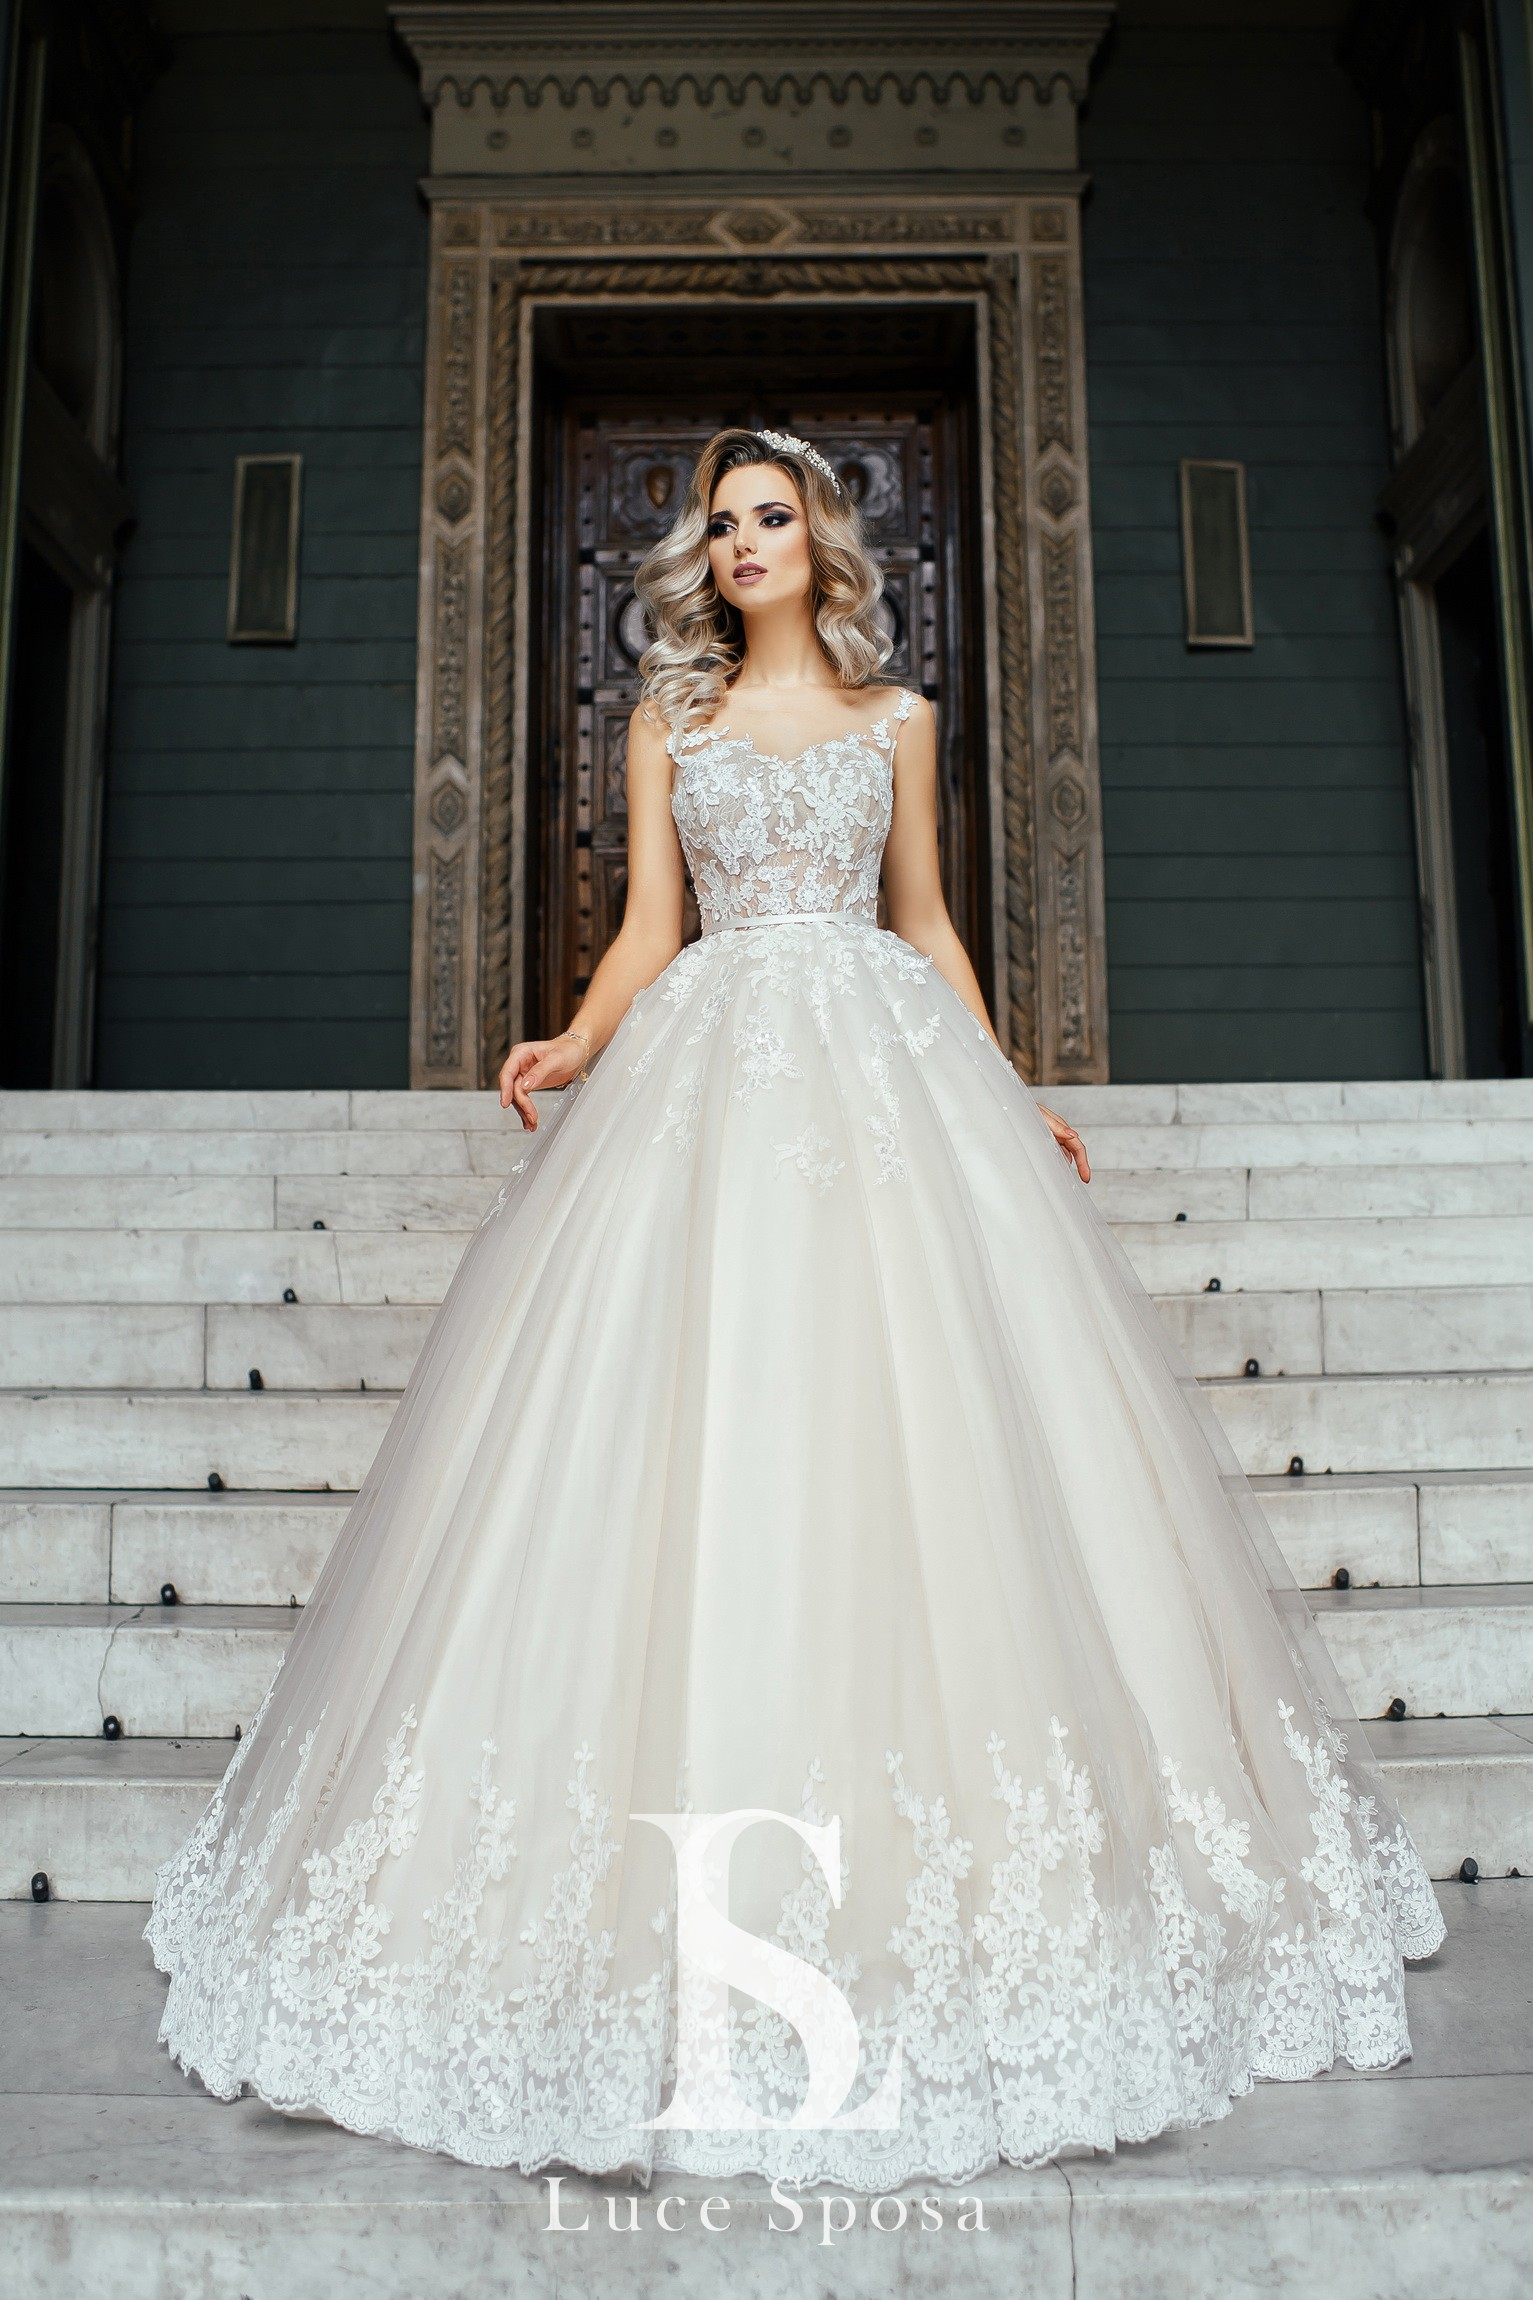 https://lucesposa.com/images/stories/virtuemart/product/ABB_36358.jpg